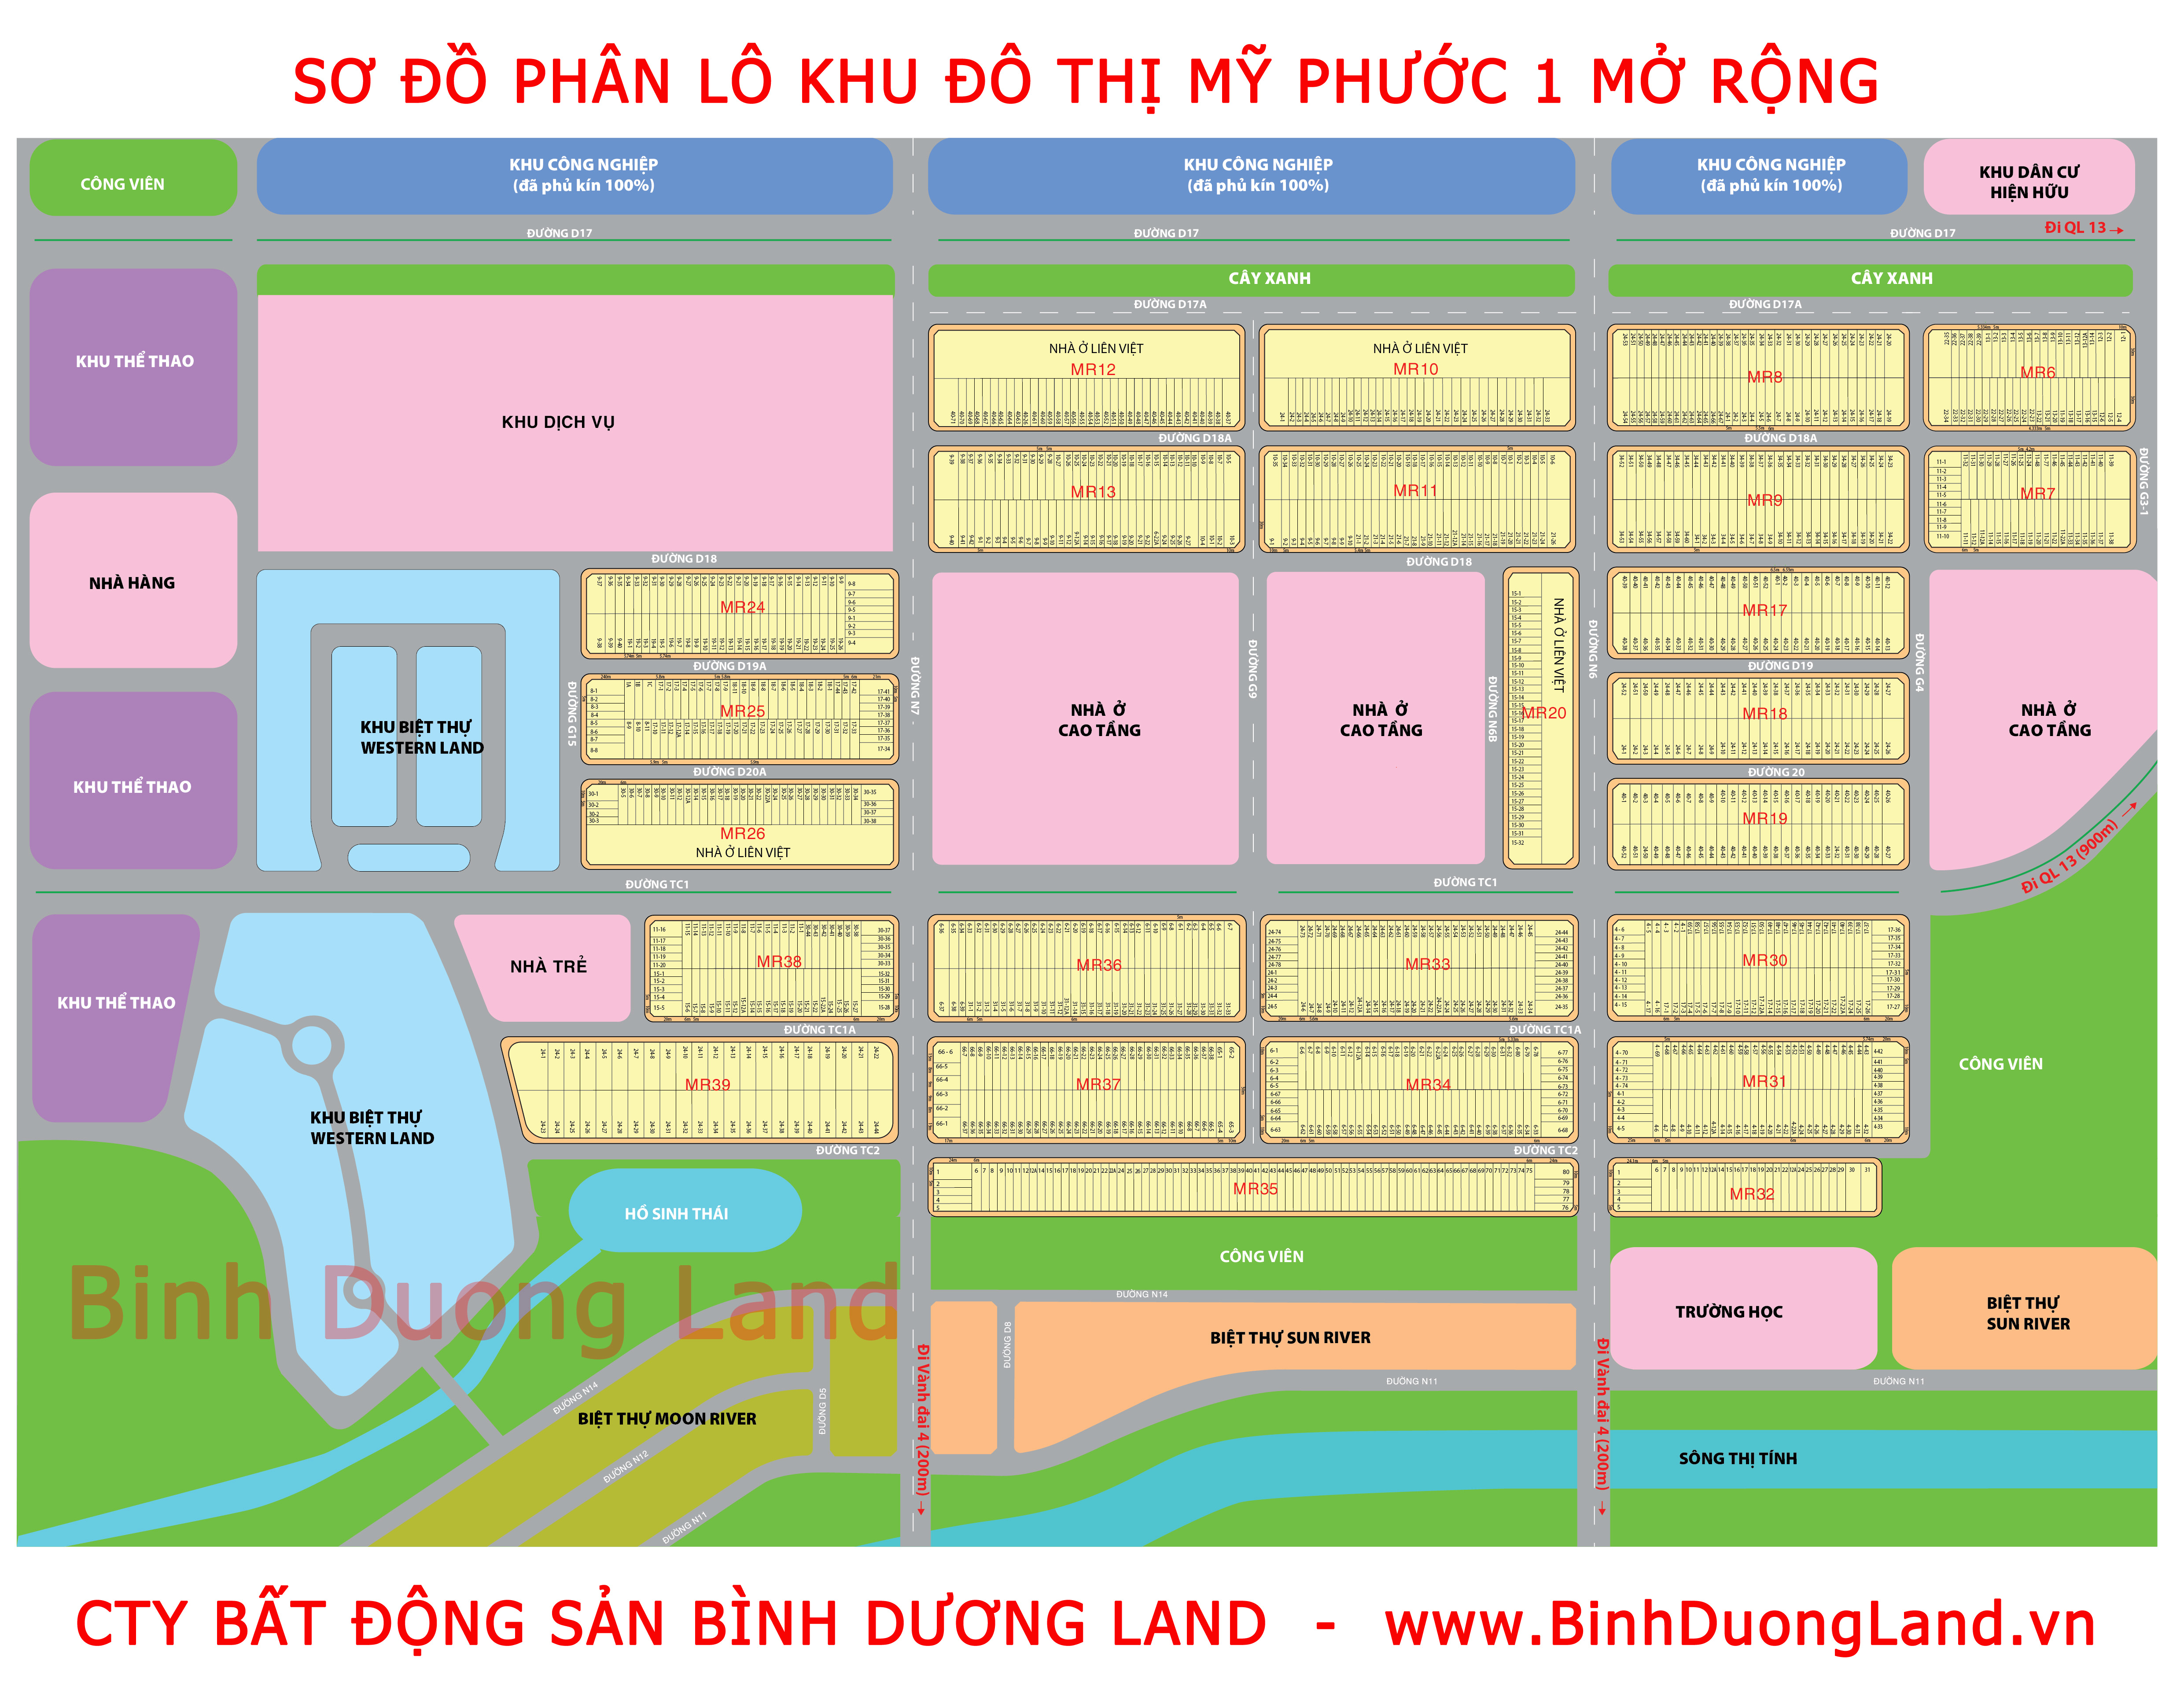 http://www.binhduongland.vn/wp-content/uploads/so-do-My-Phuoc-1-Mo-Rong.jpg